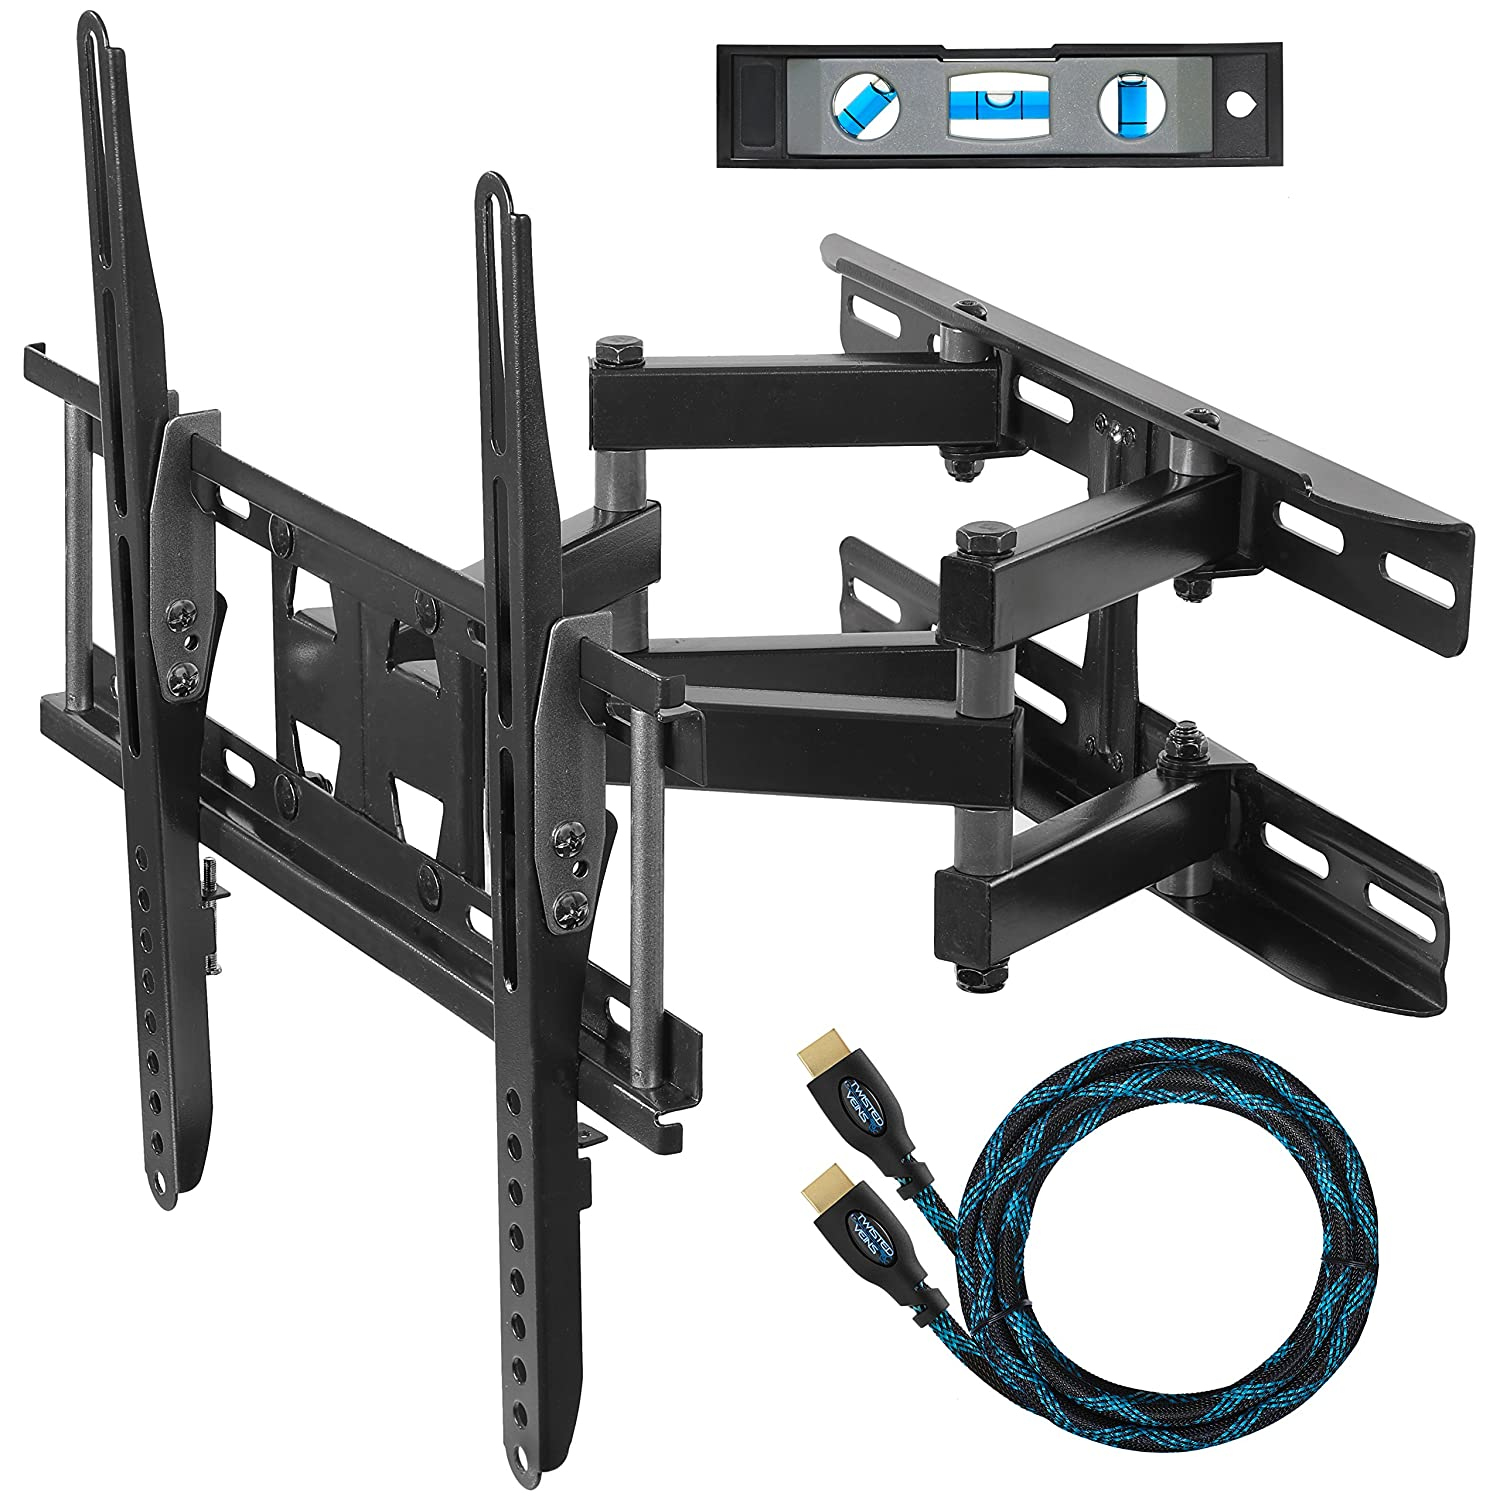 Amazon.com: Cheetah APDAM3B 13.5-Inch Extension Dual Articulating Arm TV Wall  Mount Bracket for 20-65 inch TVs Bundle with 10-Inch